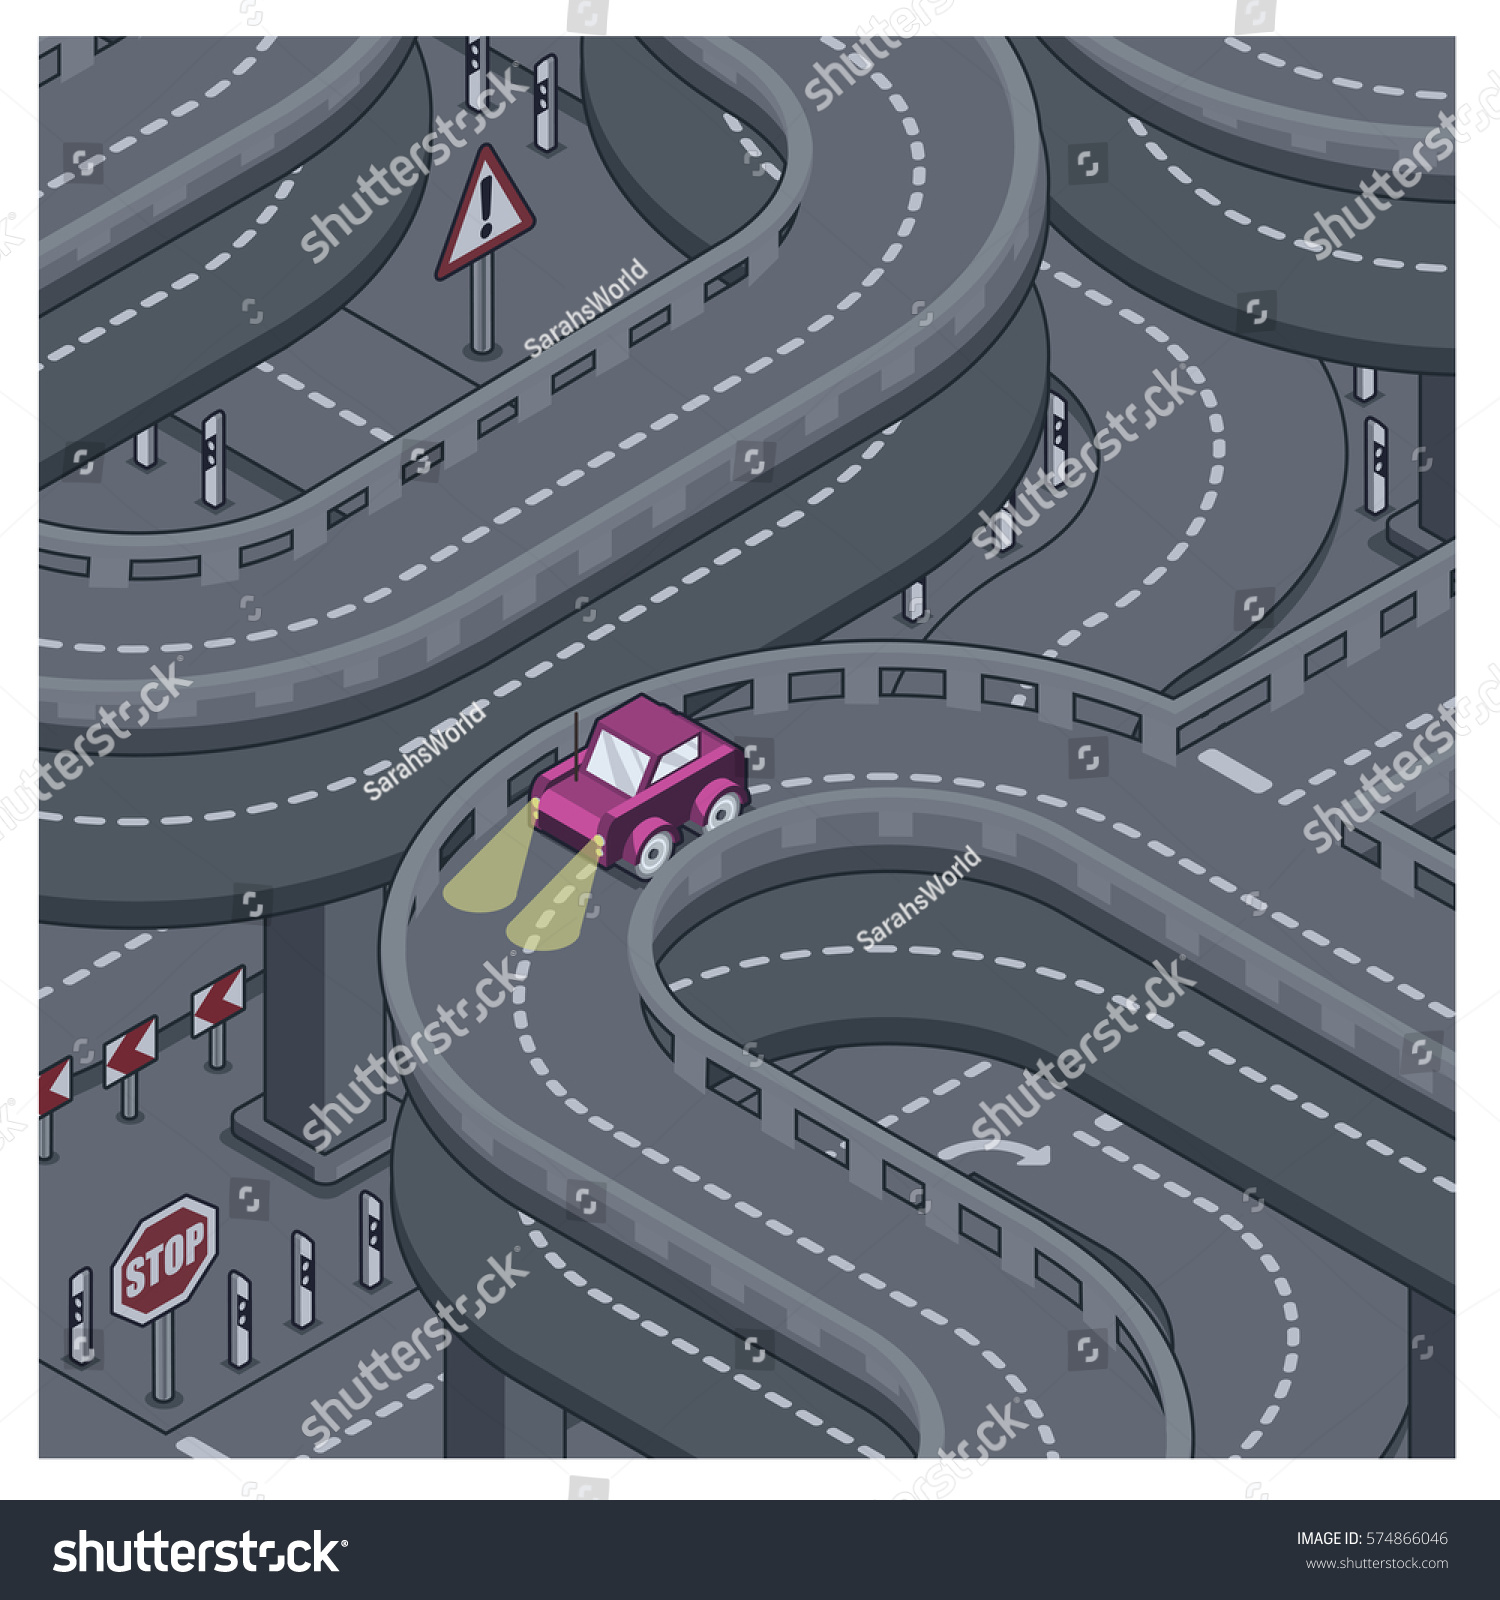 Little car driving with headlights on in the middle of the night on highway isometric